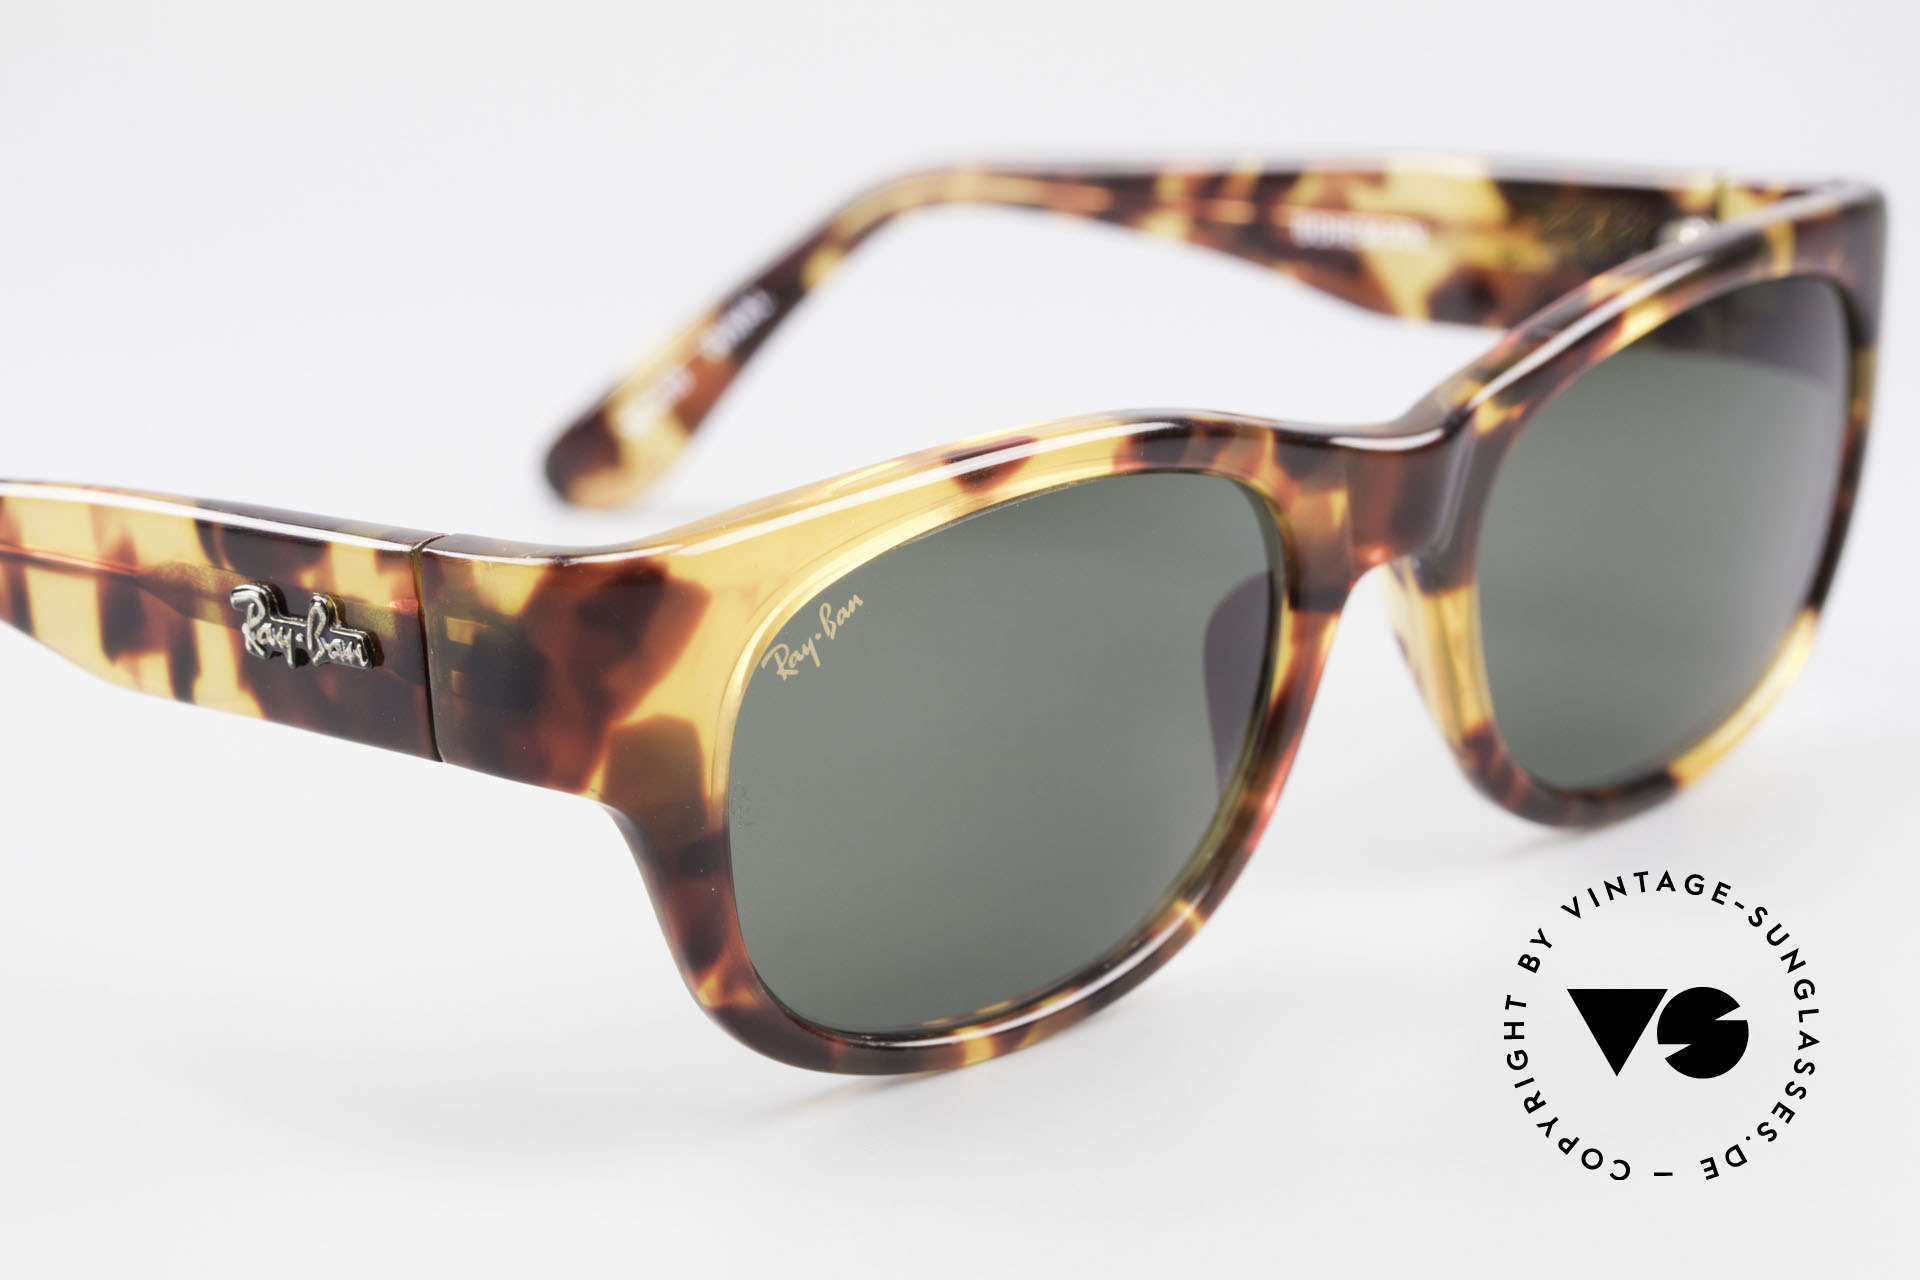 Ray Ban Bohemian Bausch & Lomb Sunglasses, NO RETRO glasses, but an old B&L ORIGINAL!, Made for Men and Women